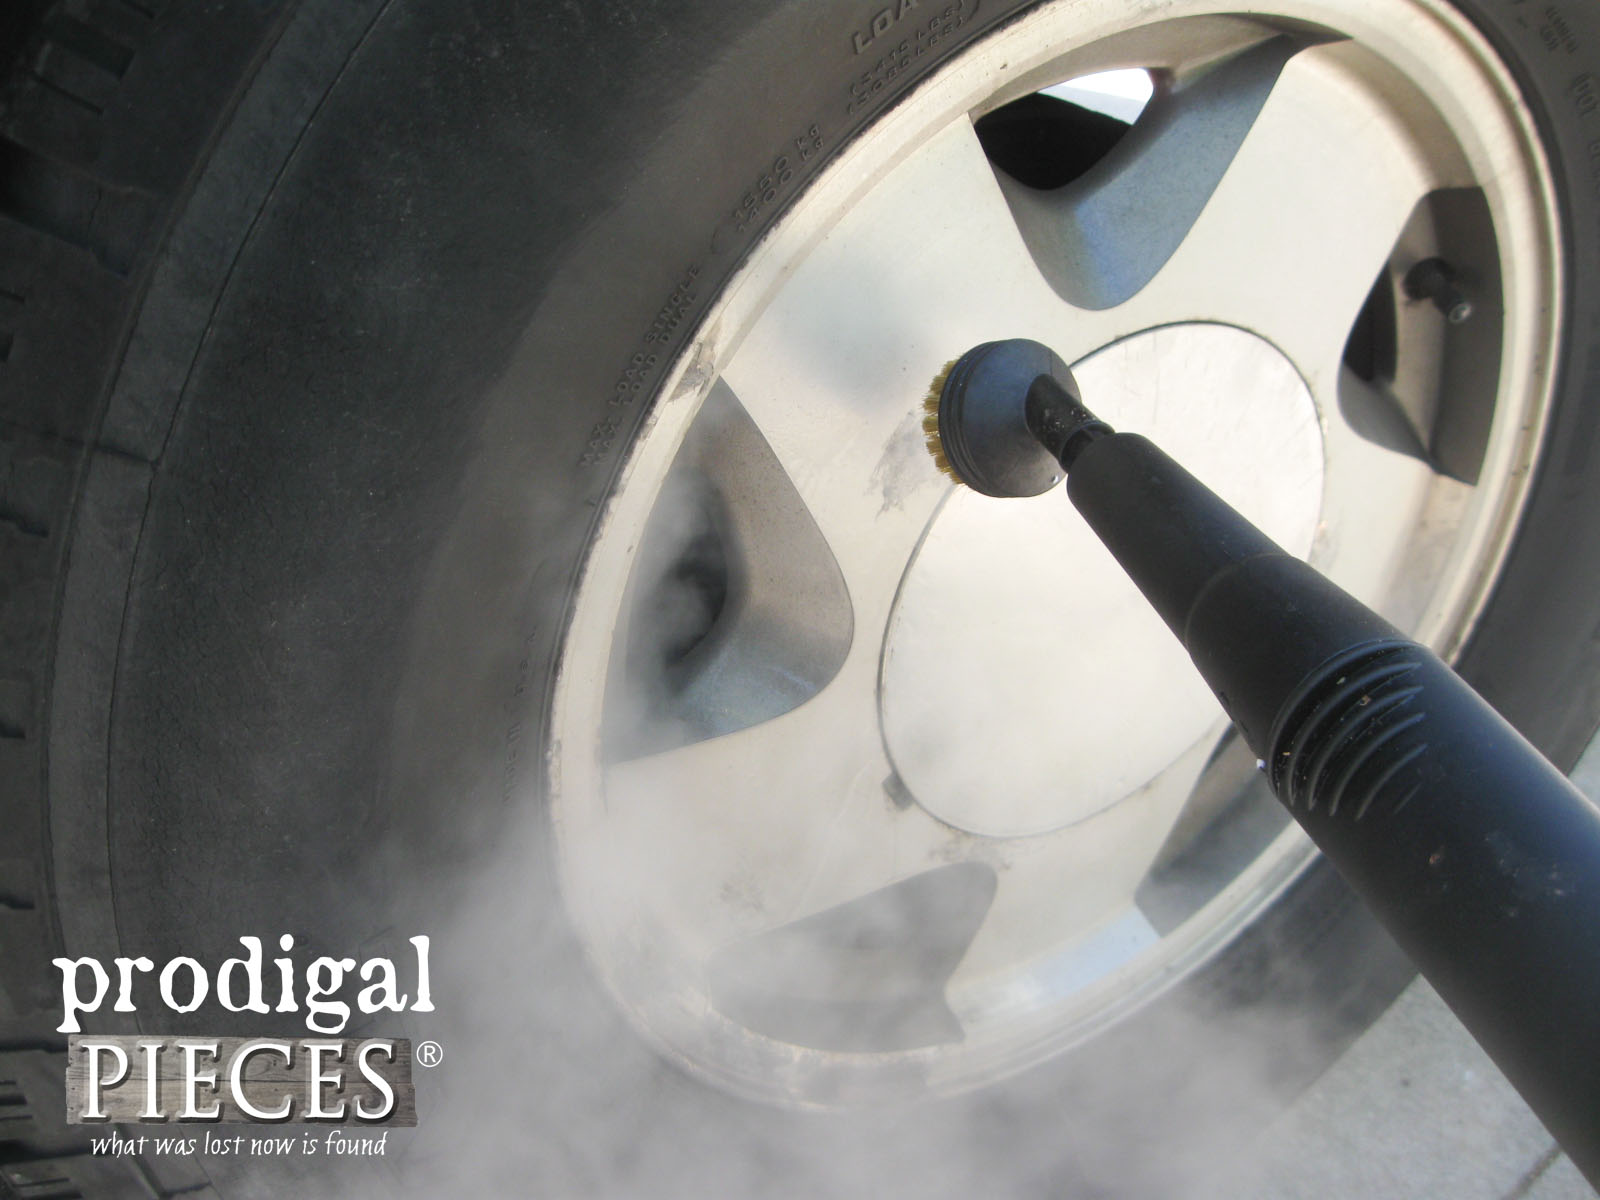 Chemical Free Tire Cleaning with the AutoRight Steam Machine by Prodigal Pieces | www.prodigalpieces.com